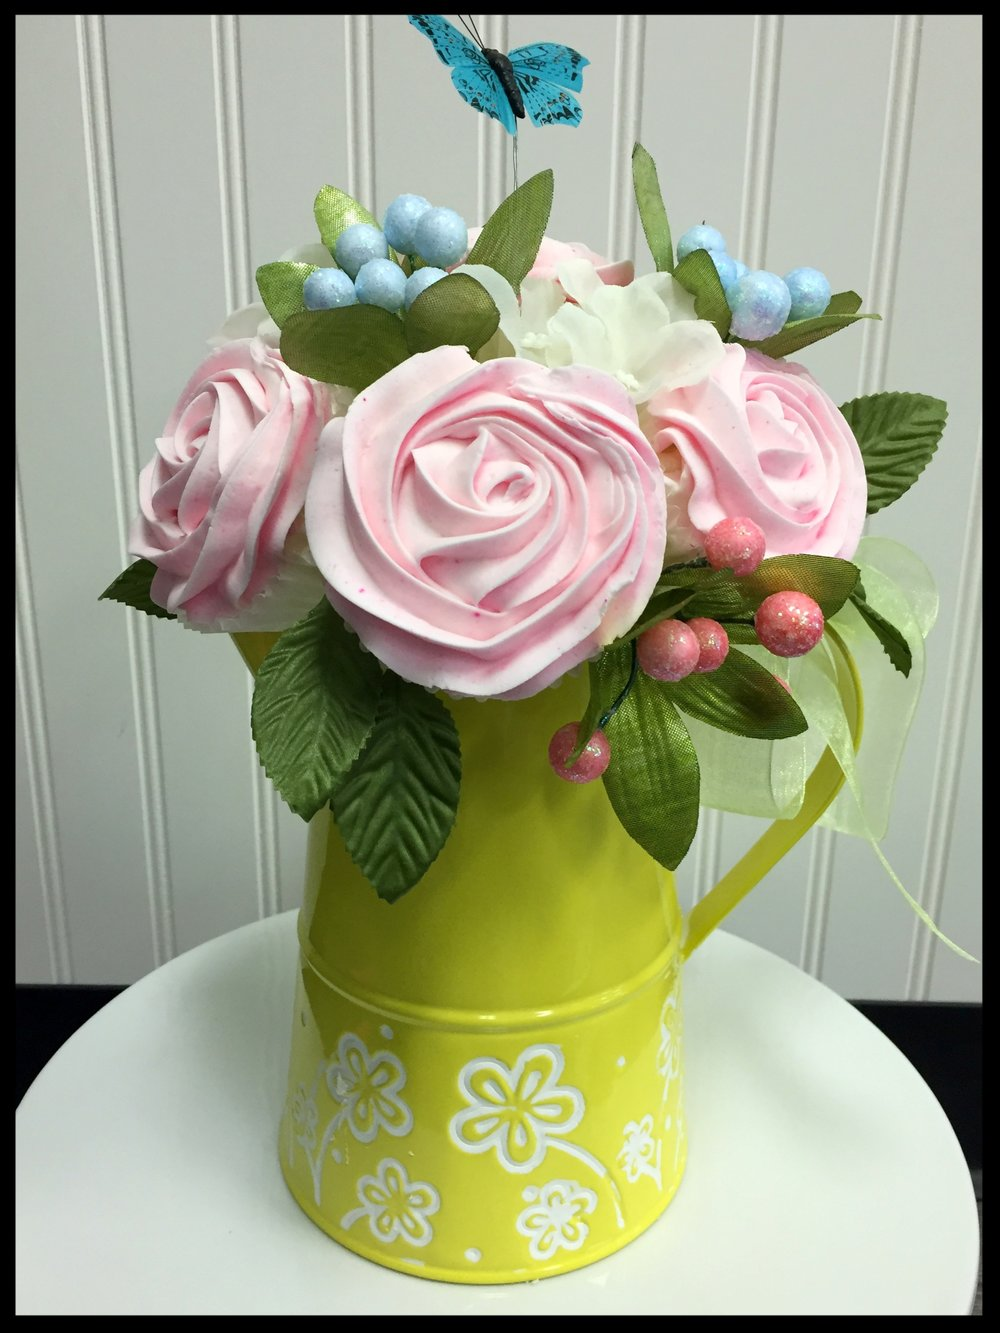 TIN WATERING CAN - 5 CUPCAKES